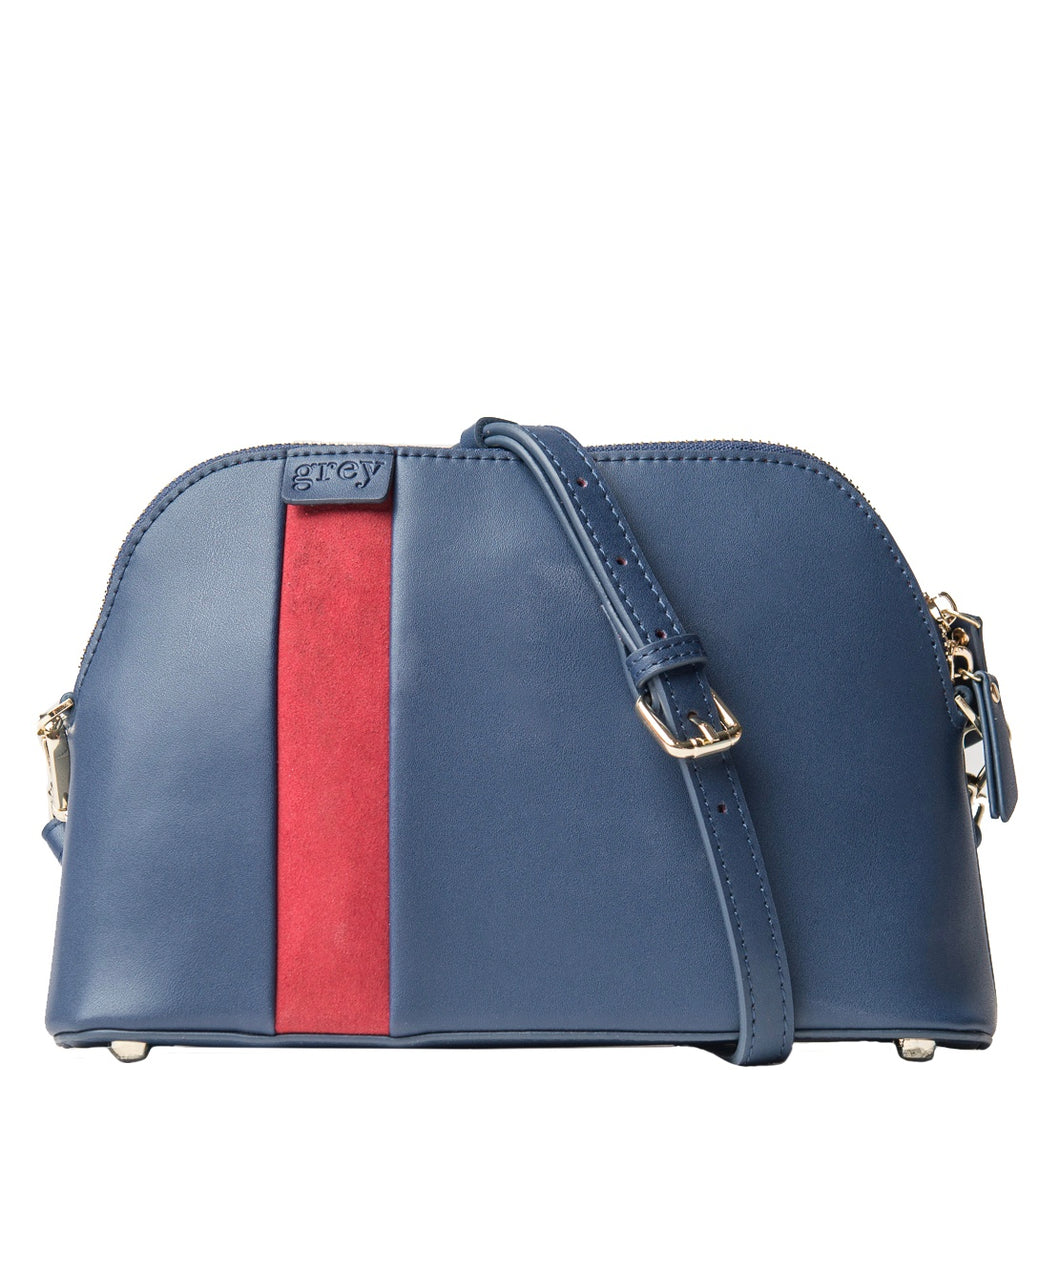 Mayden Cross Body (Blue Leather with Red Suede) - Time Limited Sale! - greyortenhill